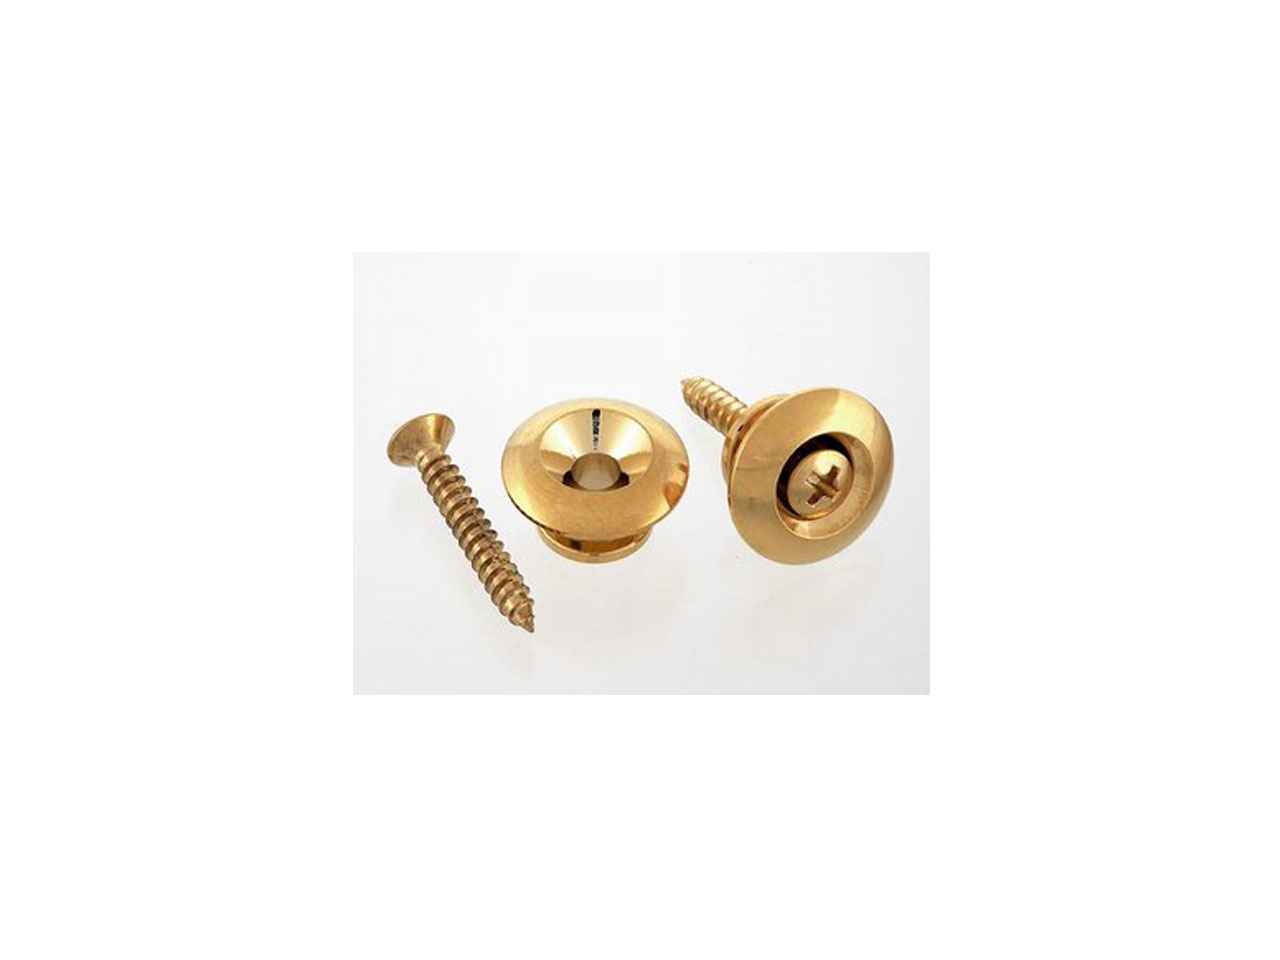 Allparts / AP-0684-002 Oversized Gold Buttons